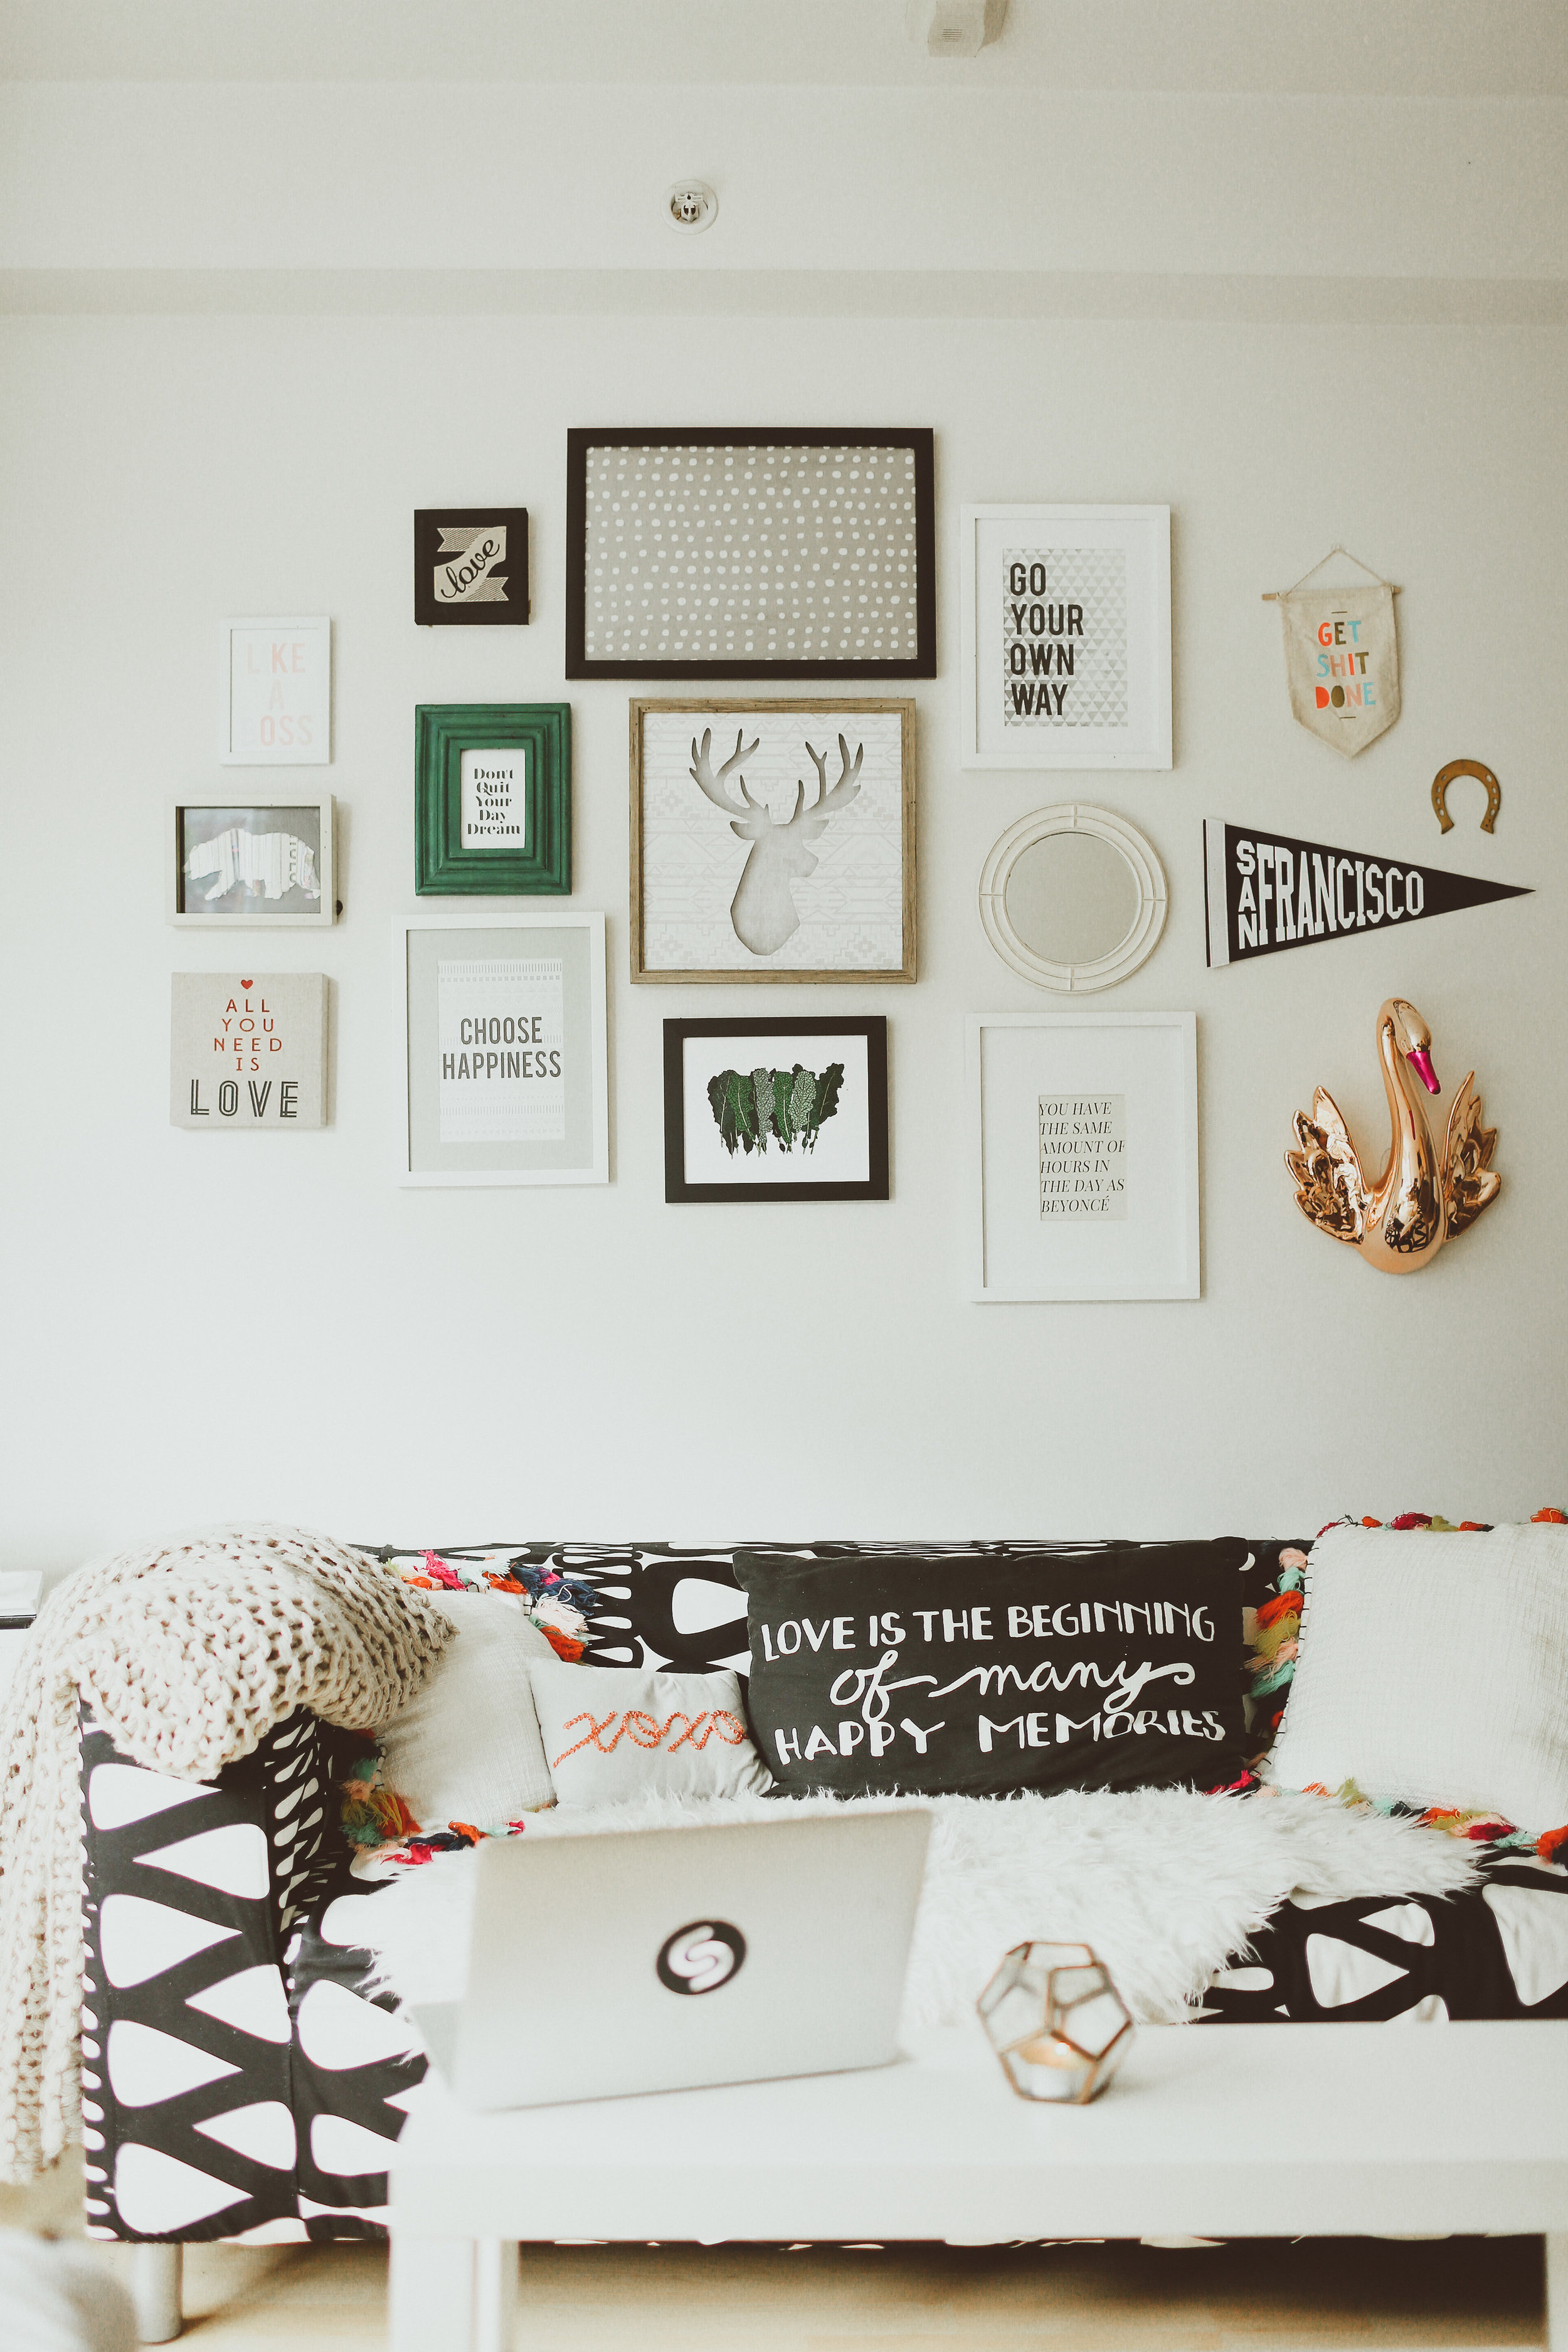 The EveryGirl Home Tour - My studio and my story were featured on the EveryGirl.